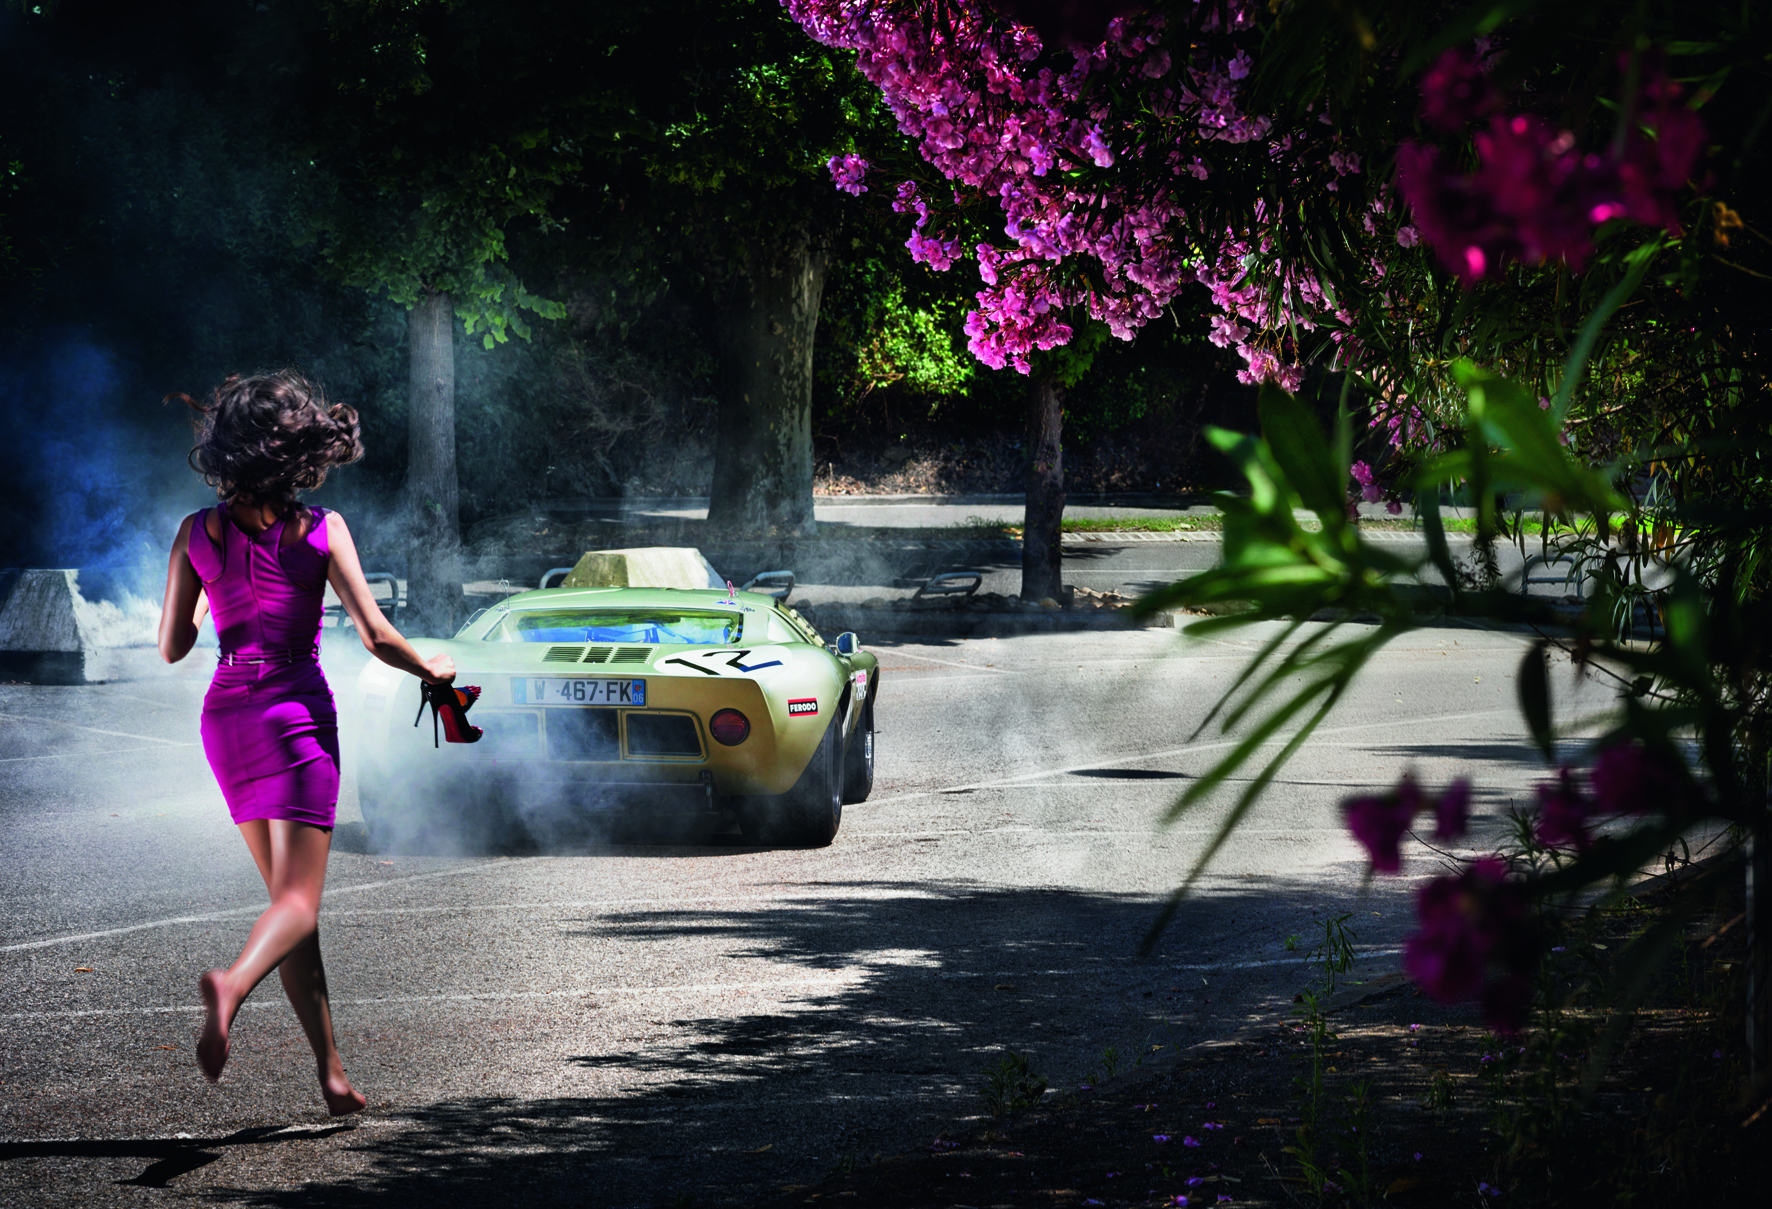 © Chasing Paradise by David Drebin, published by teNeues, www.teneues.com. Wheels and Heels, 2013, Photo © 2015 David Drebin. All rights reserved.